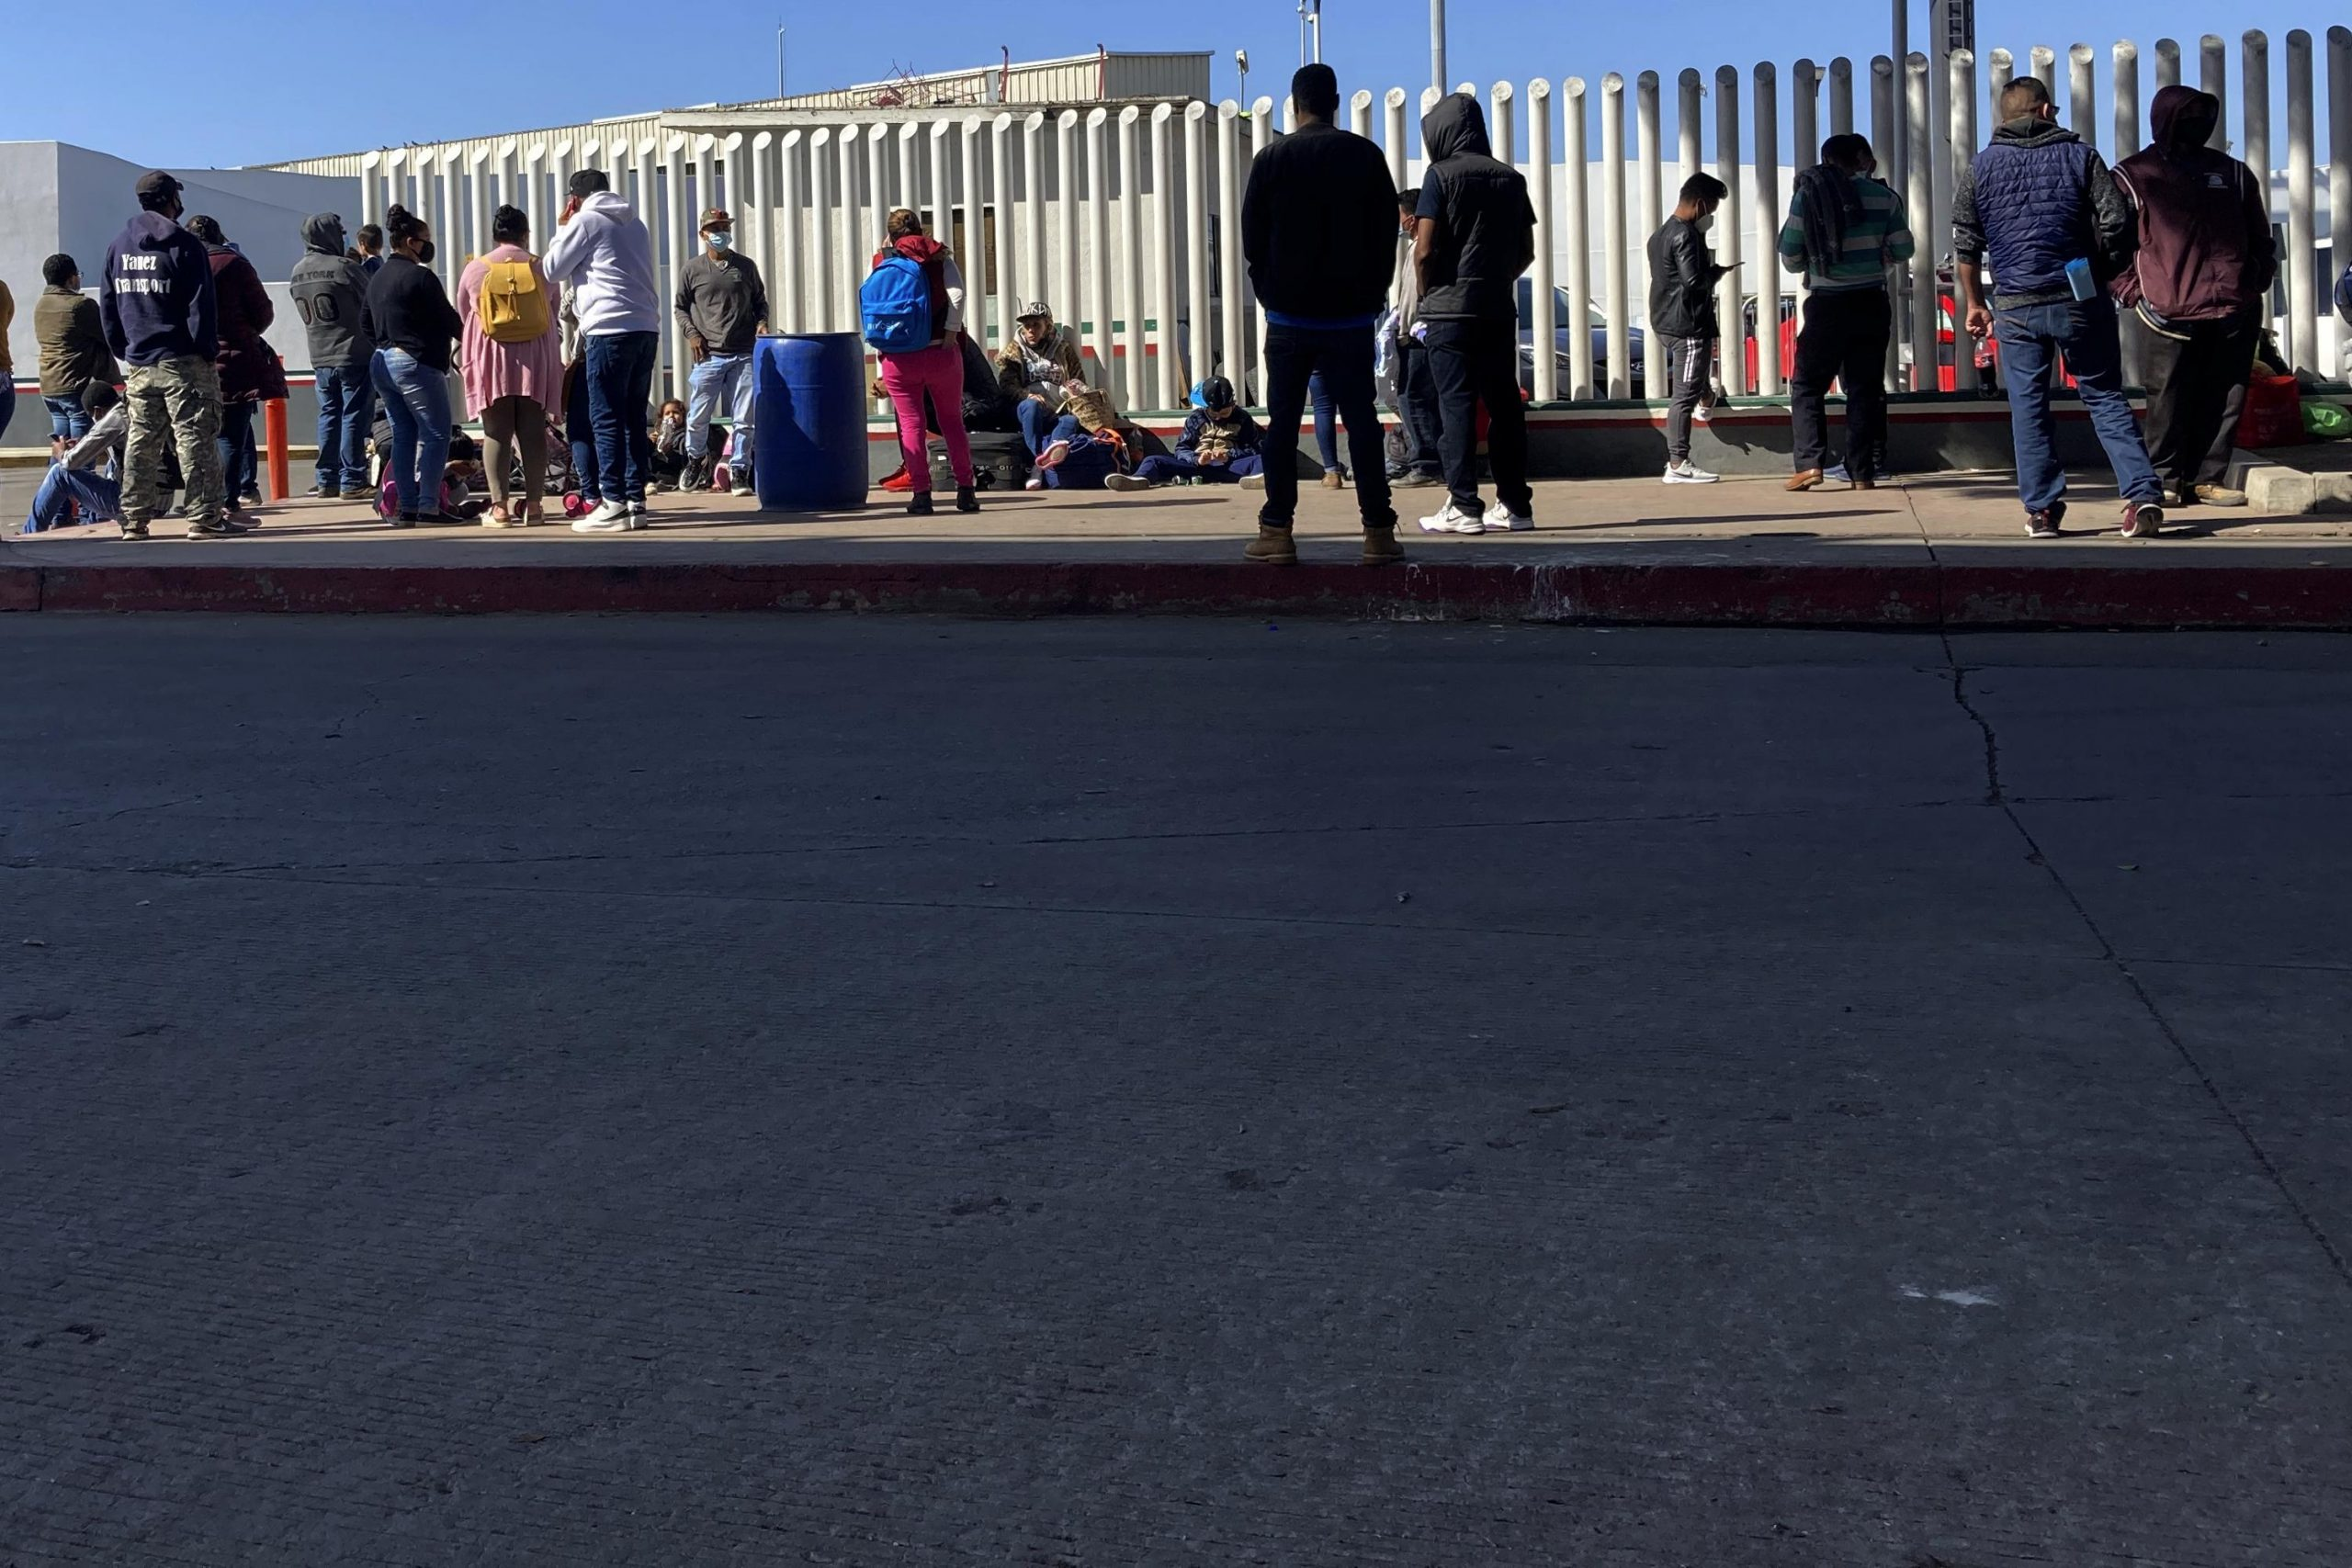 Supreme Court halts reinstating 'Remain in Mexico' policy 6